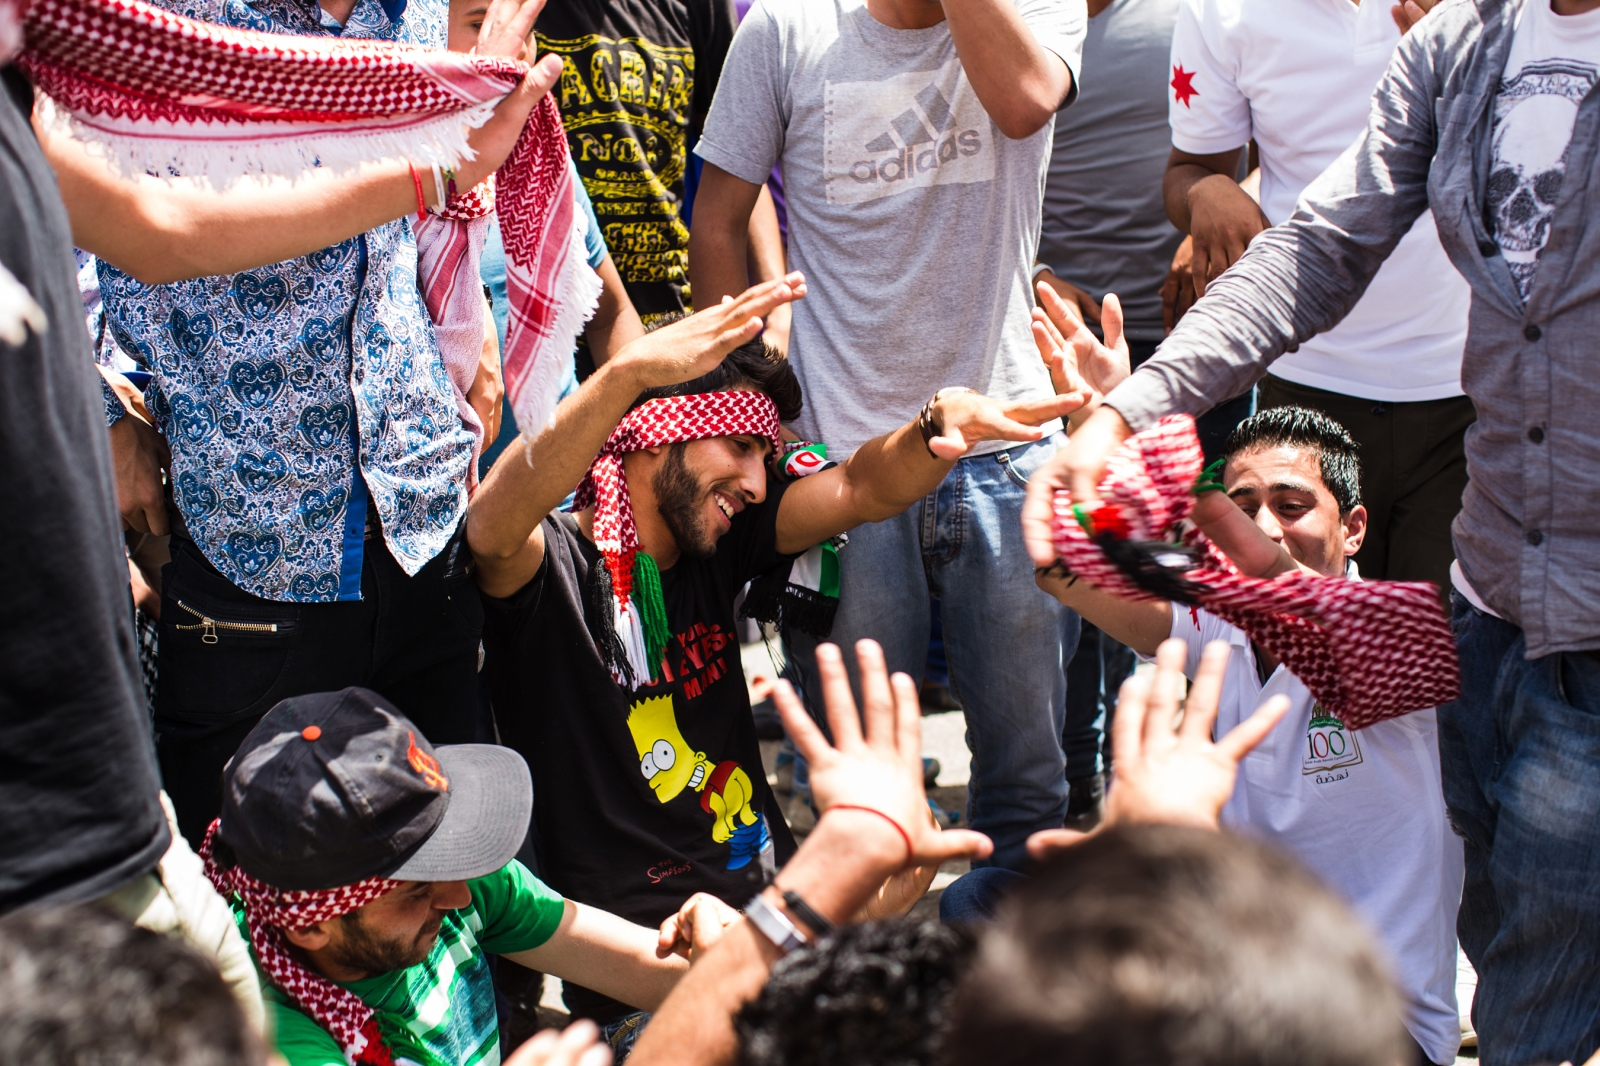 An impromptu breakdancing circle breaks out in a crowd as people watched an Autostrad concert, a Jordanian rock band. The concert was part of celebrations marking the 100th anniversary of the Great Arab Revolt on June 3, 2016 in Amman, Jordan.